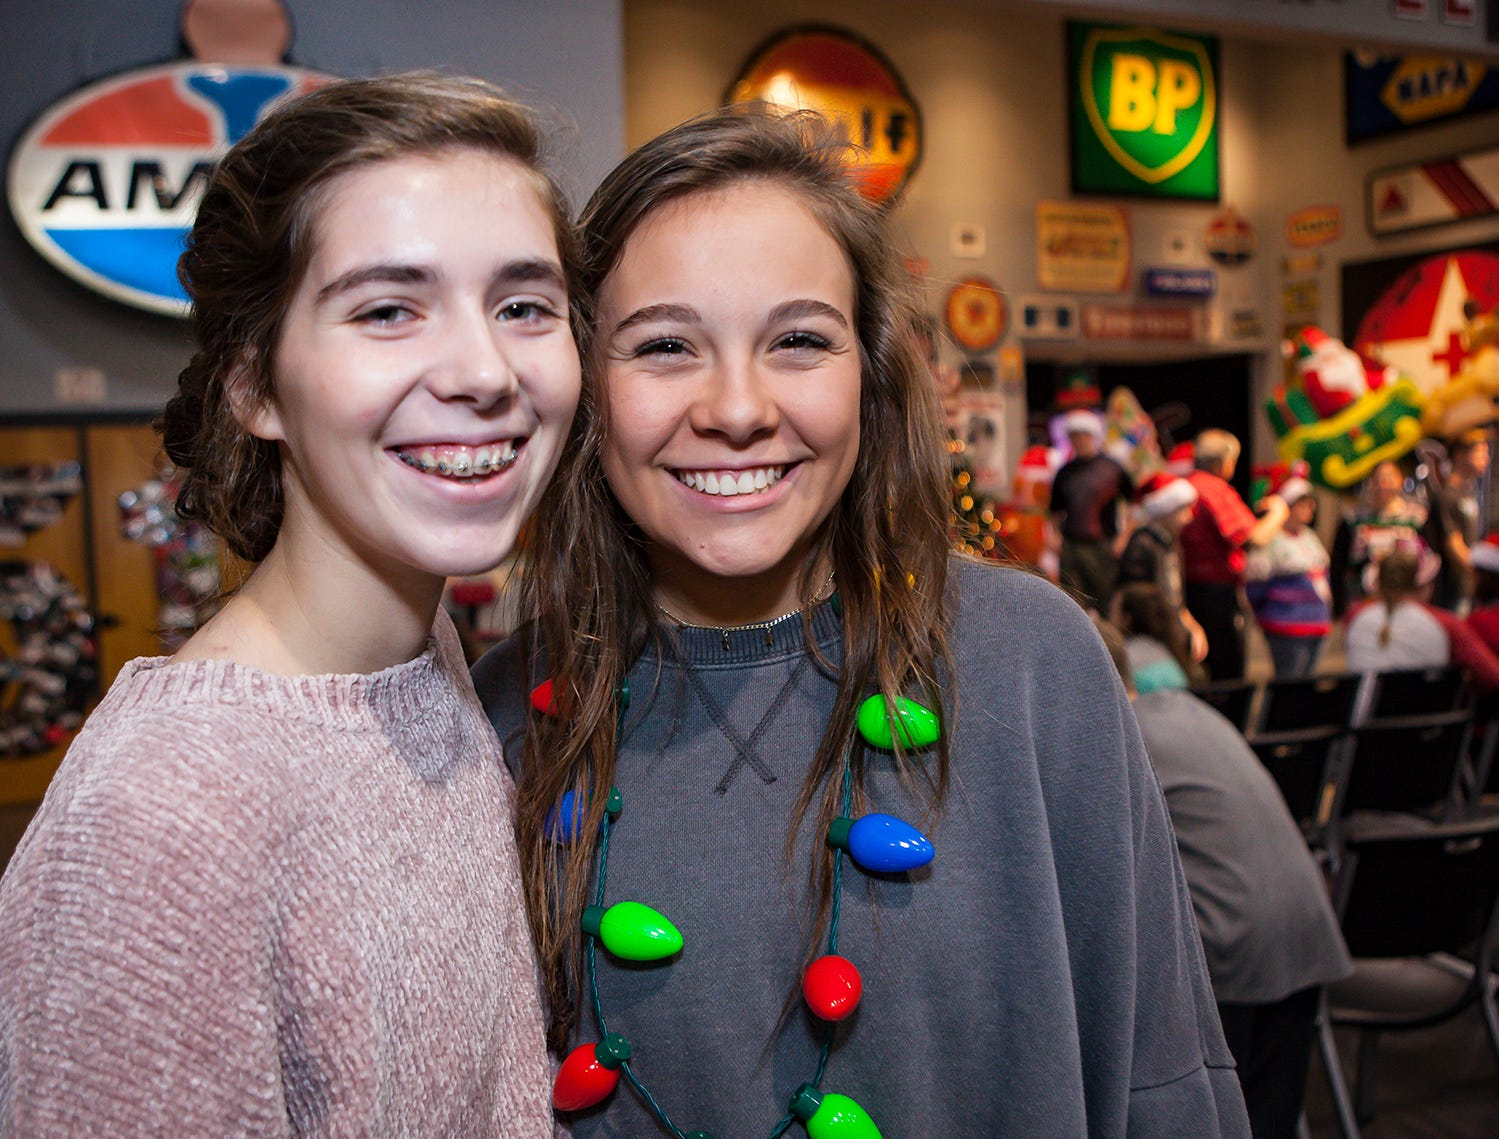 North Boulevard Church of Christ's youth ministry hosted a Christmas party for Inner City Ministries on Thursday, Nov. 29, 2018.